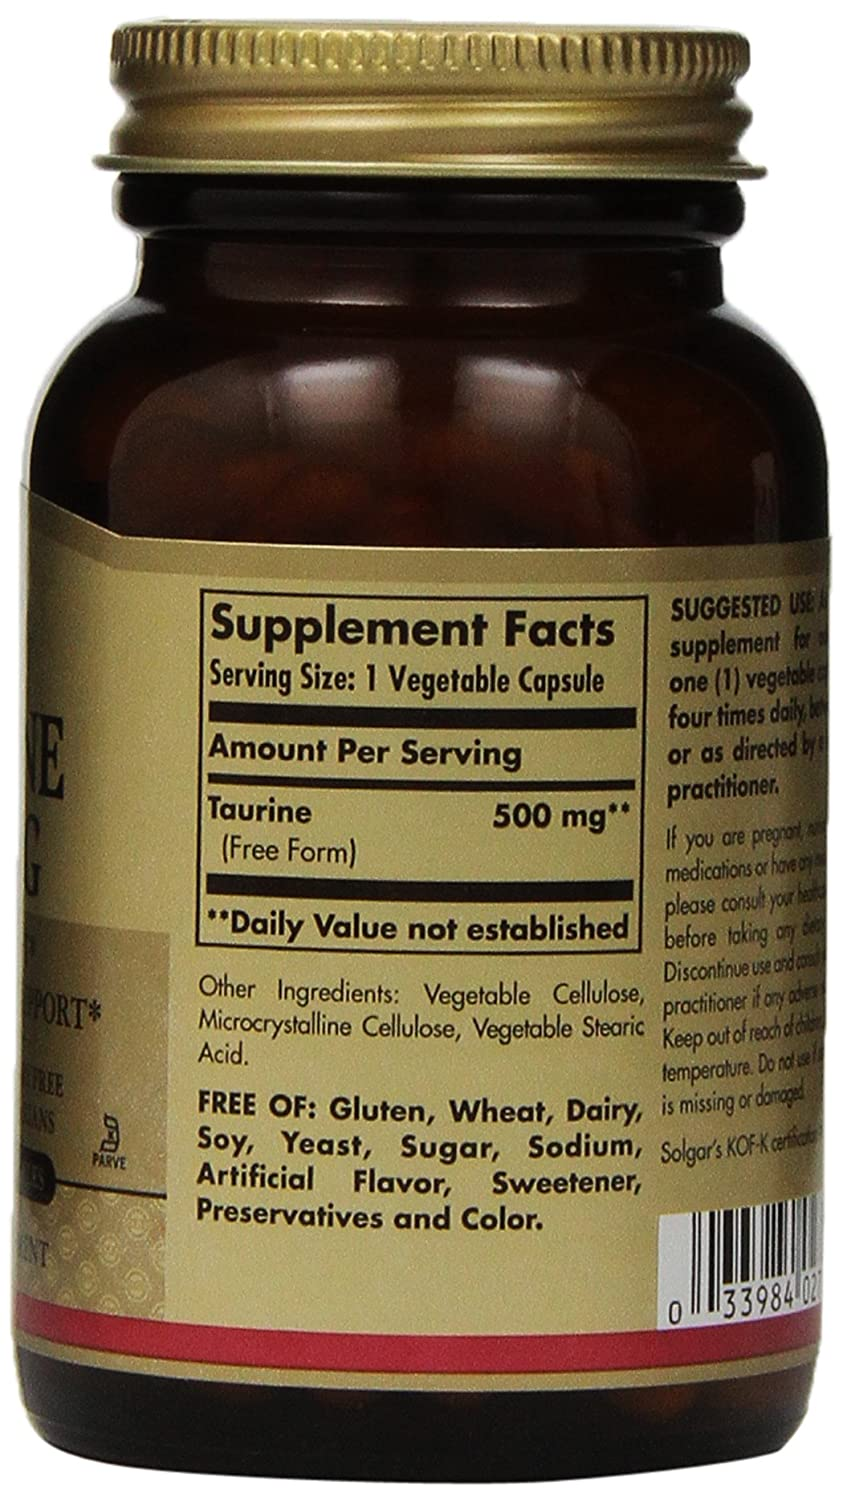 Amazon.com: Solgar - Taurine 500 mg Vegetable Capsules 100 Count: Health & Personal Care